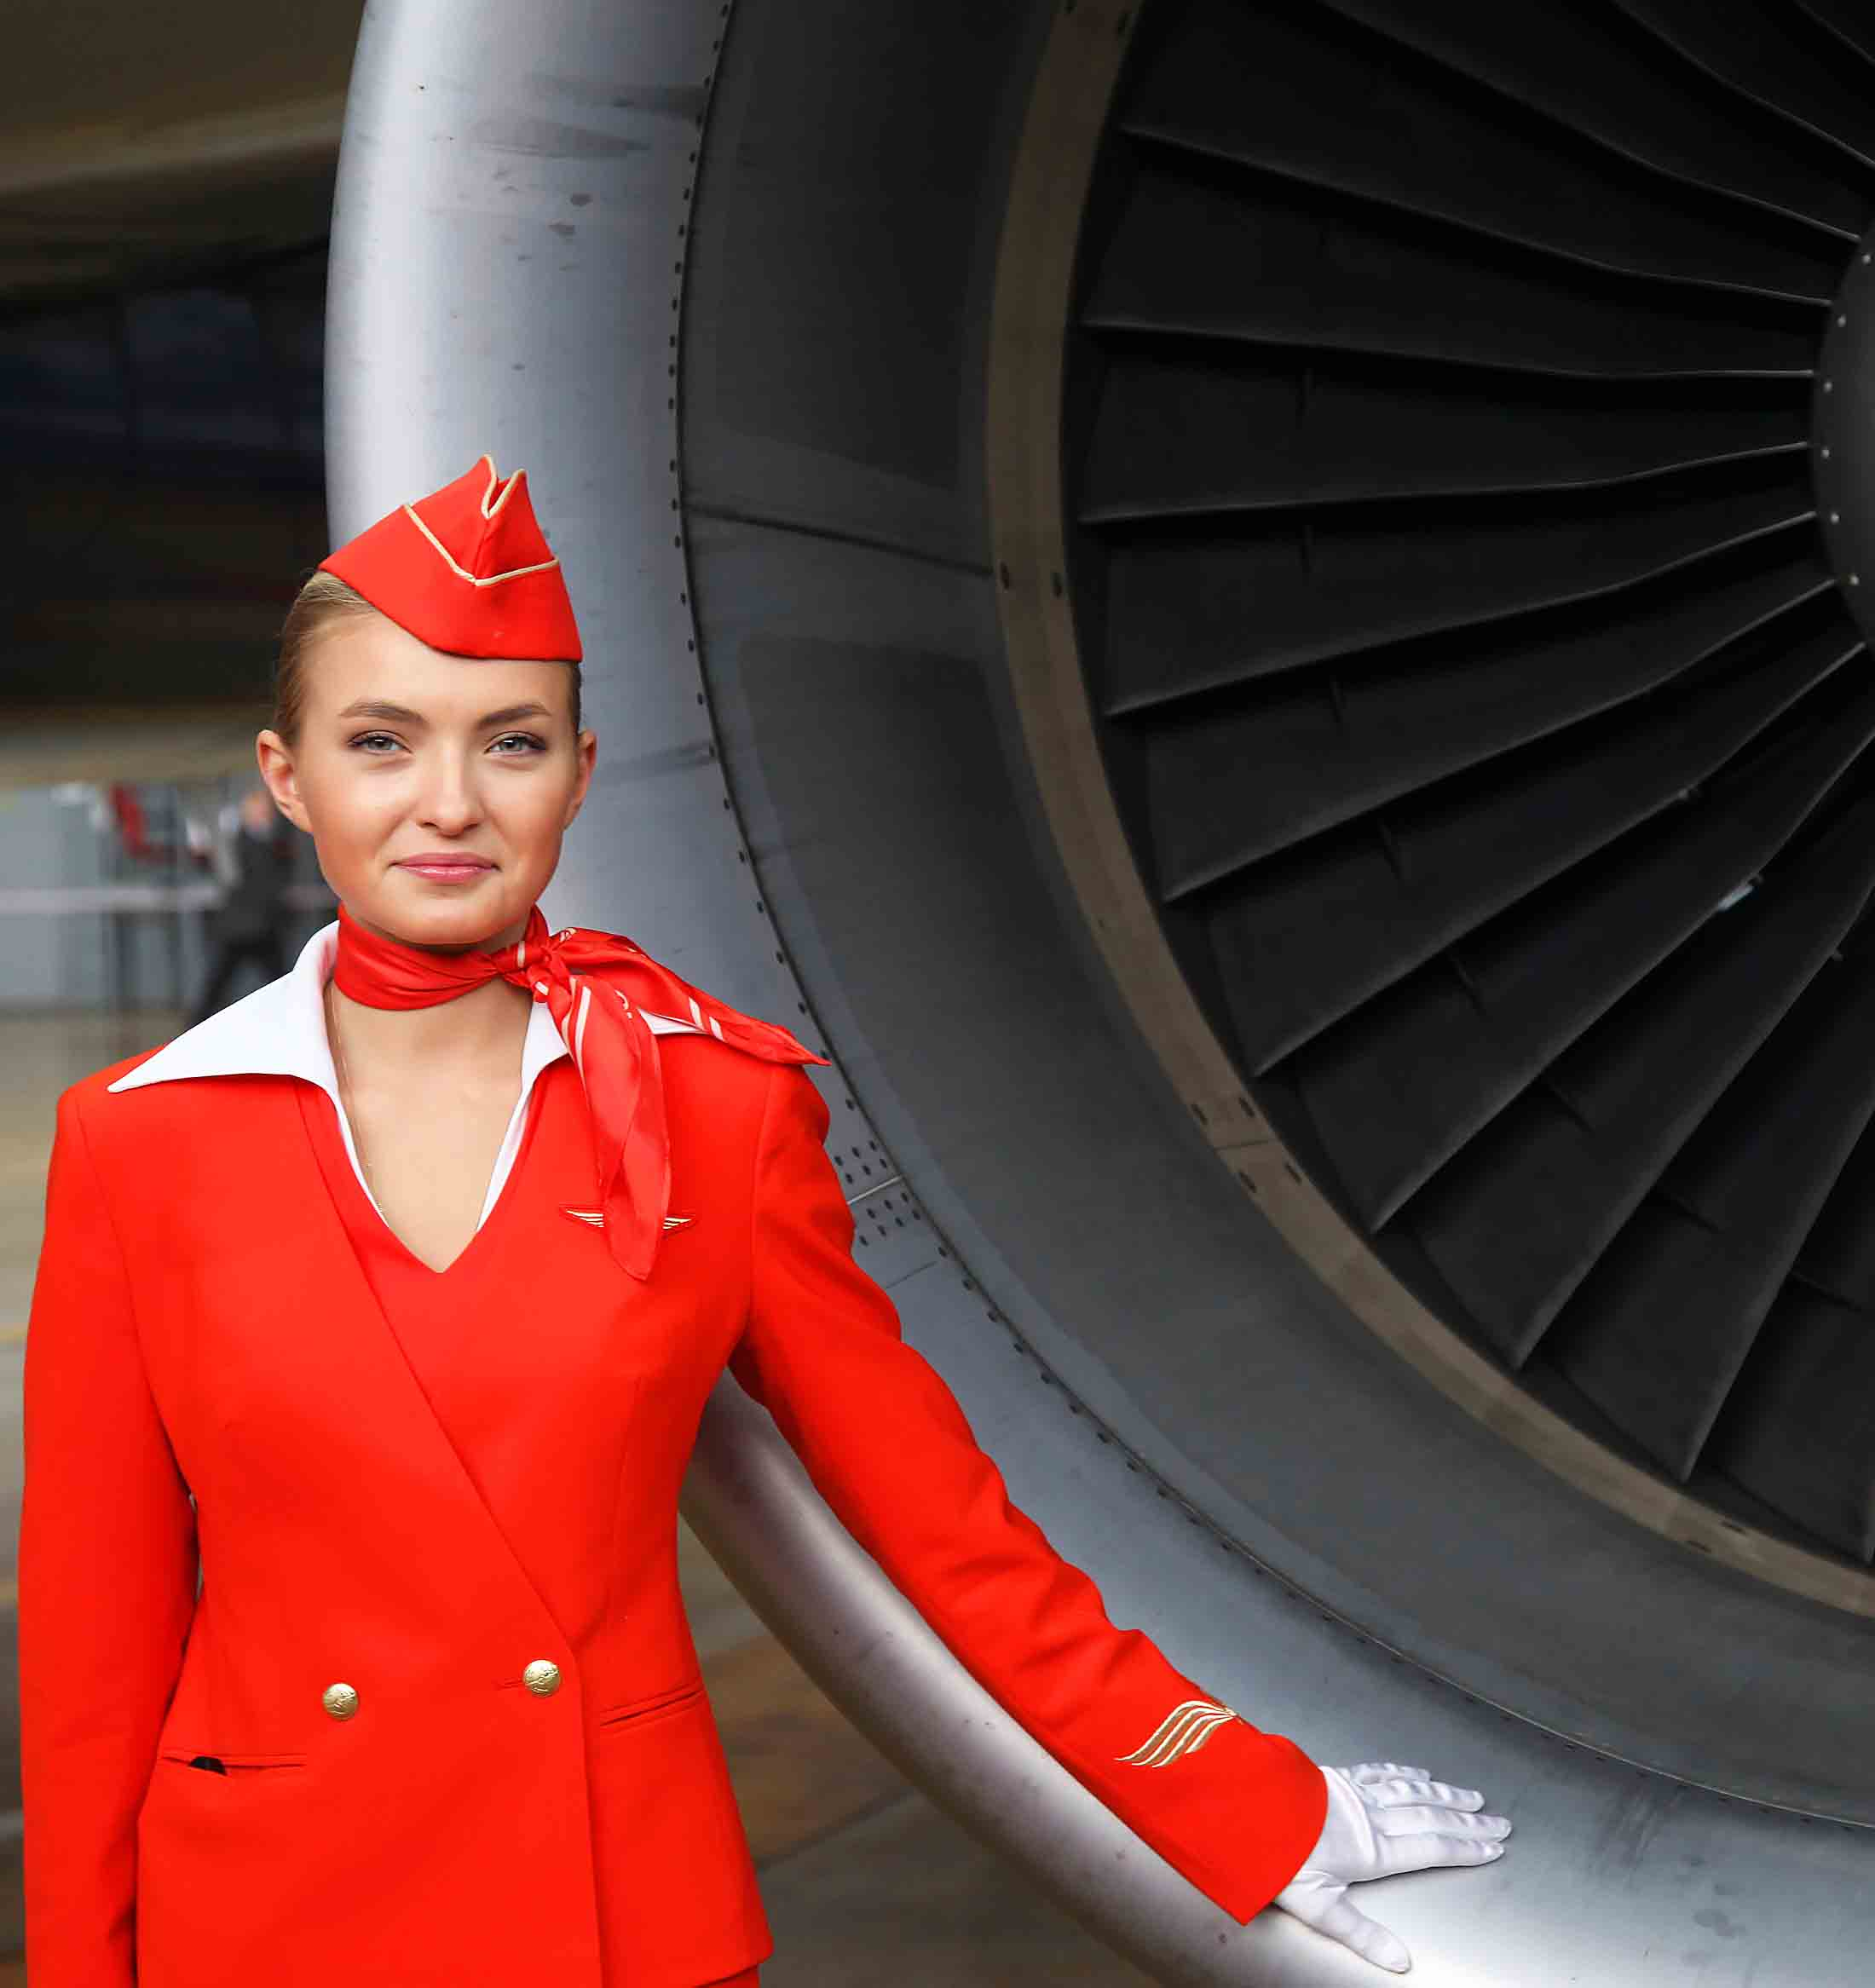 best of Being of a attendant What flight are benefits the